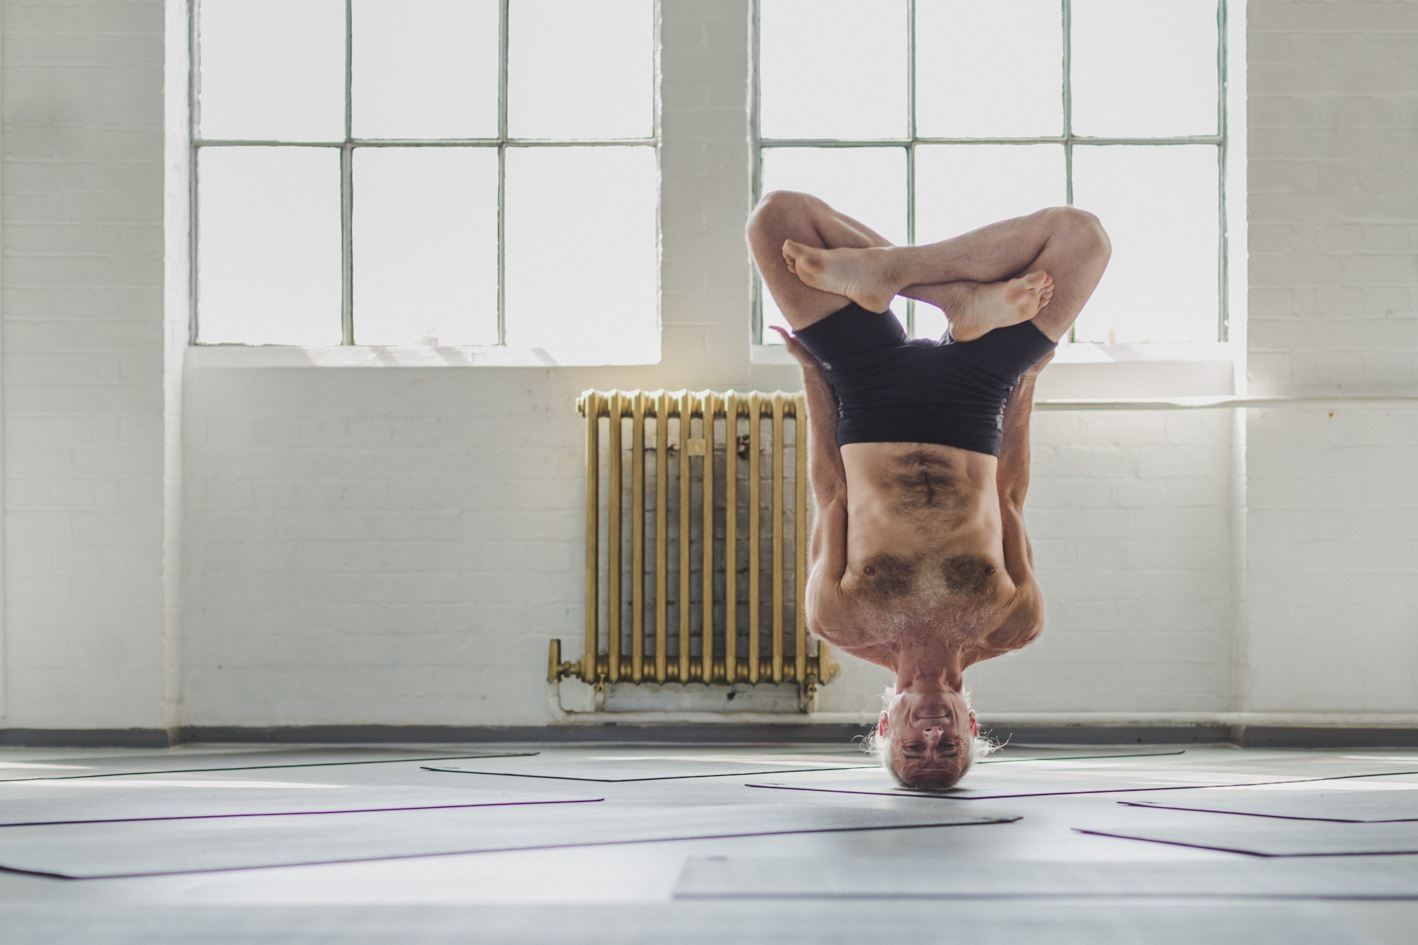 London Yoga Photographer, London Yoga Photography